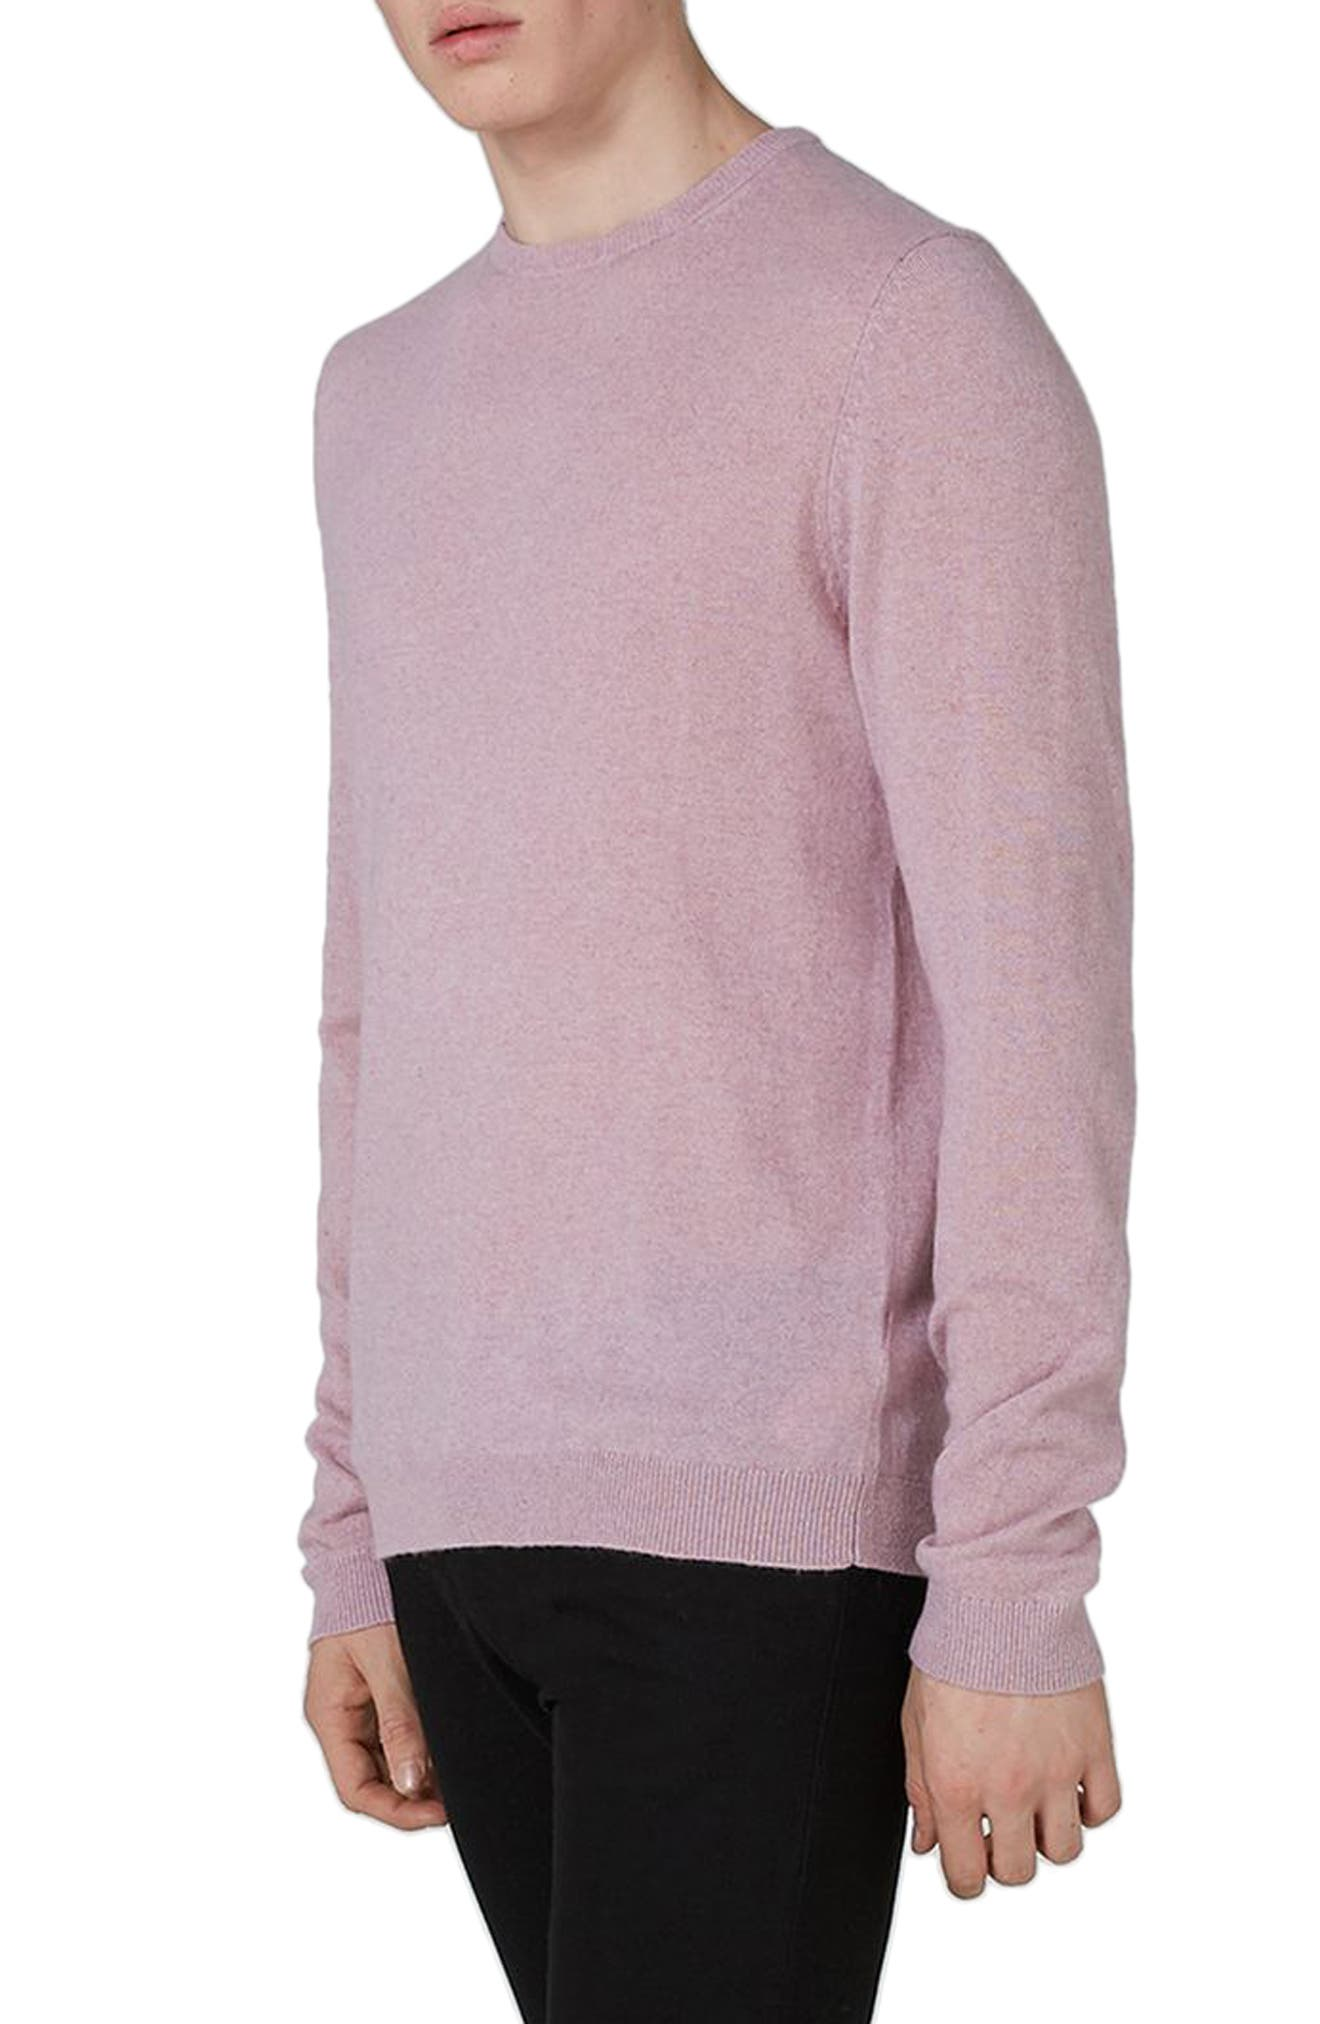 Crewneck Sweater,                             Main thumbnail 1, color,                             650